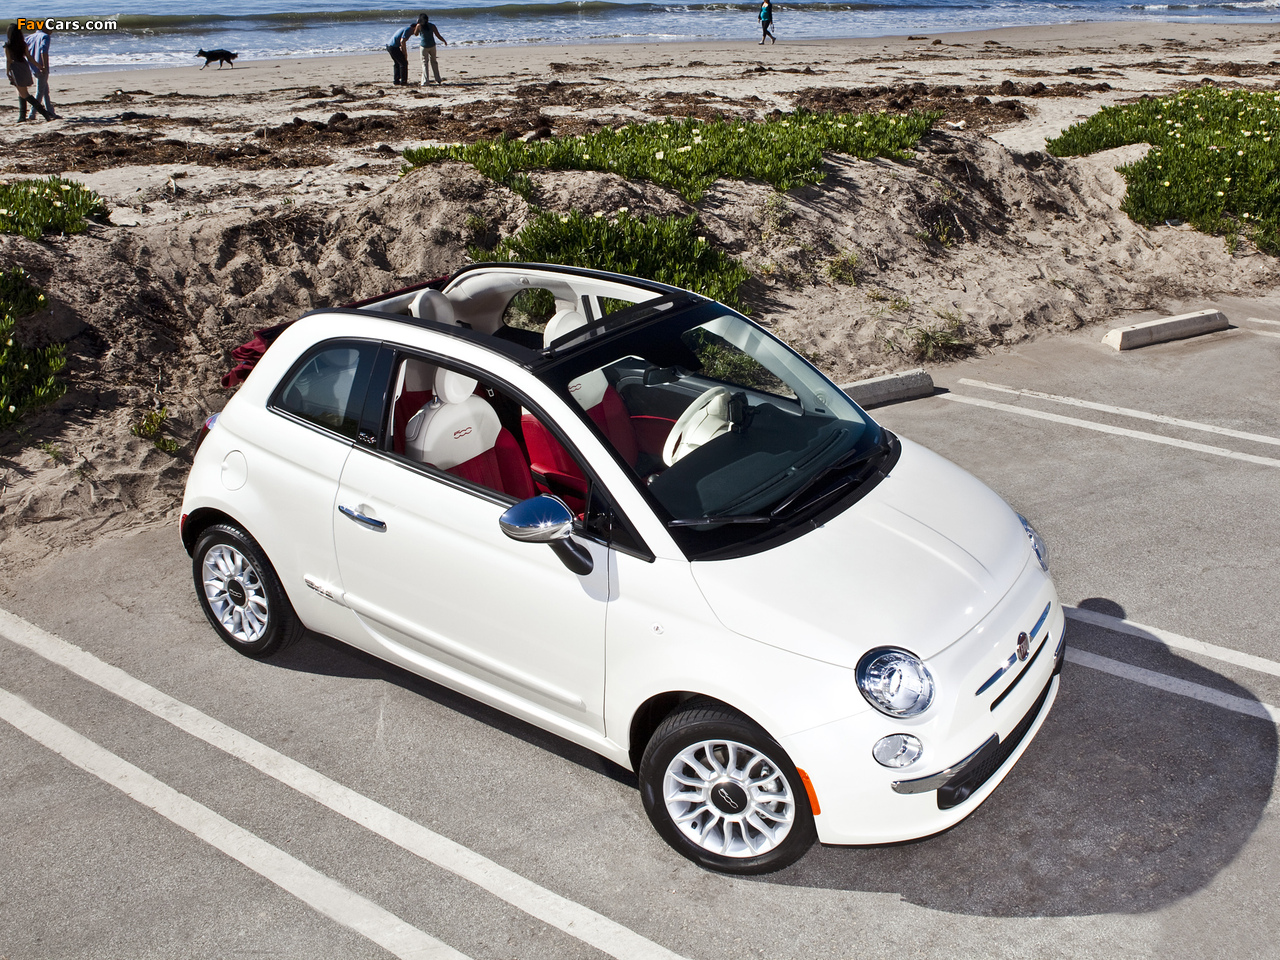 Variants further 2016 also Topic2291 60 in addition Fiat 500 1 2 Lounge 03 2 moreover 6038447. on fiat 500 lounge